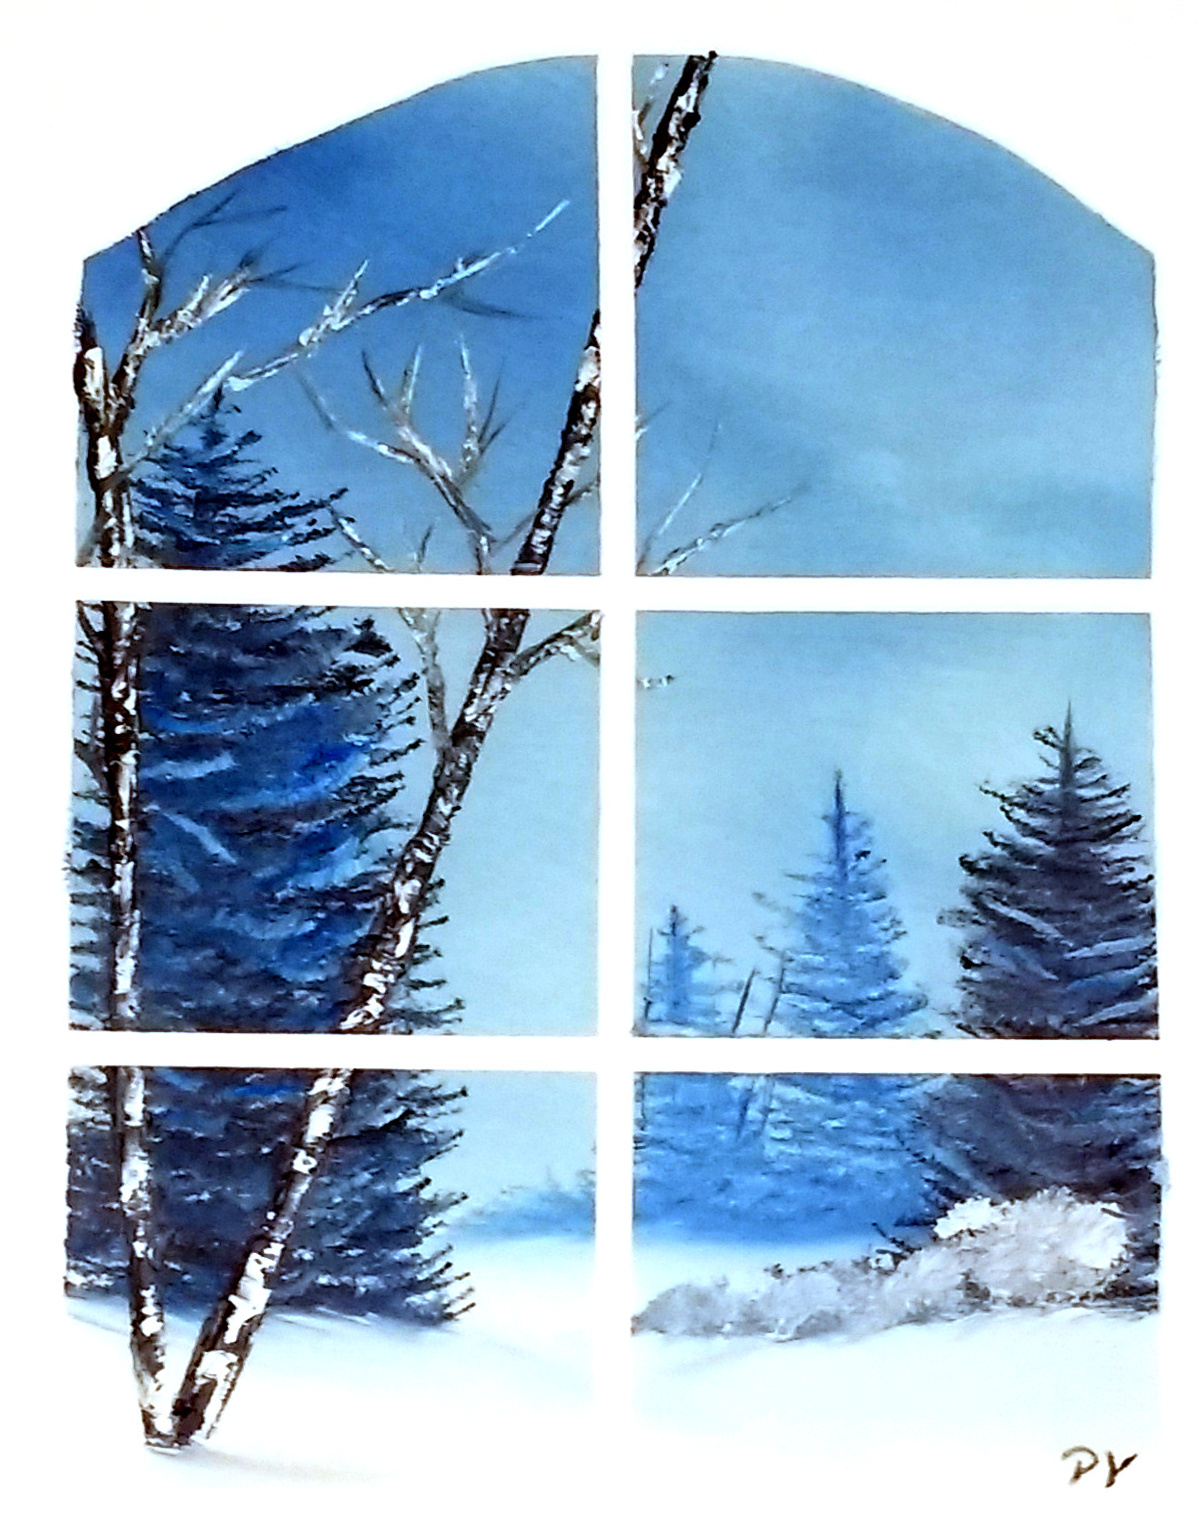 Painting of a wintry landscape as viewed through a window pane.